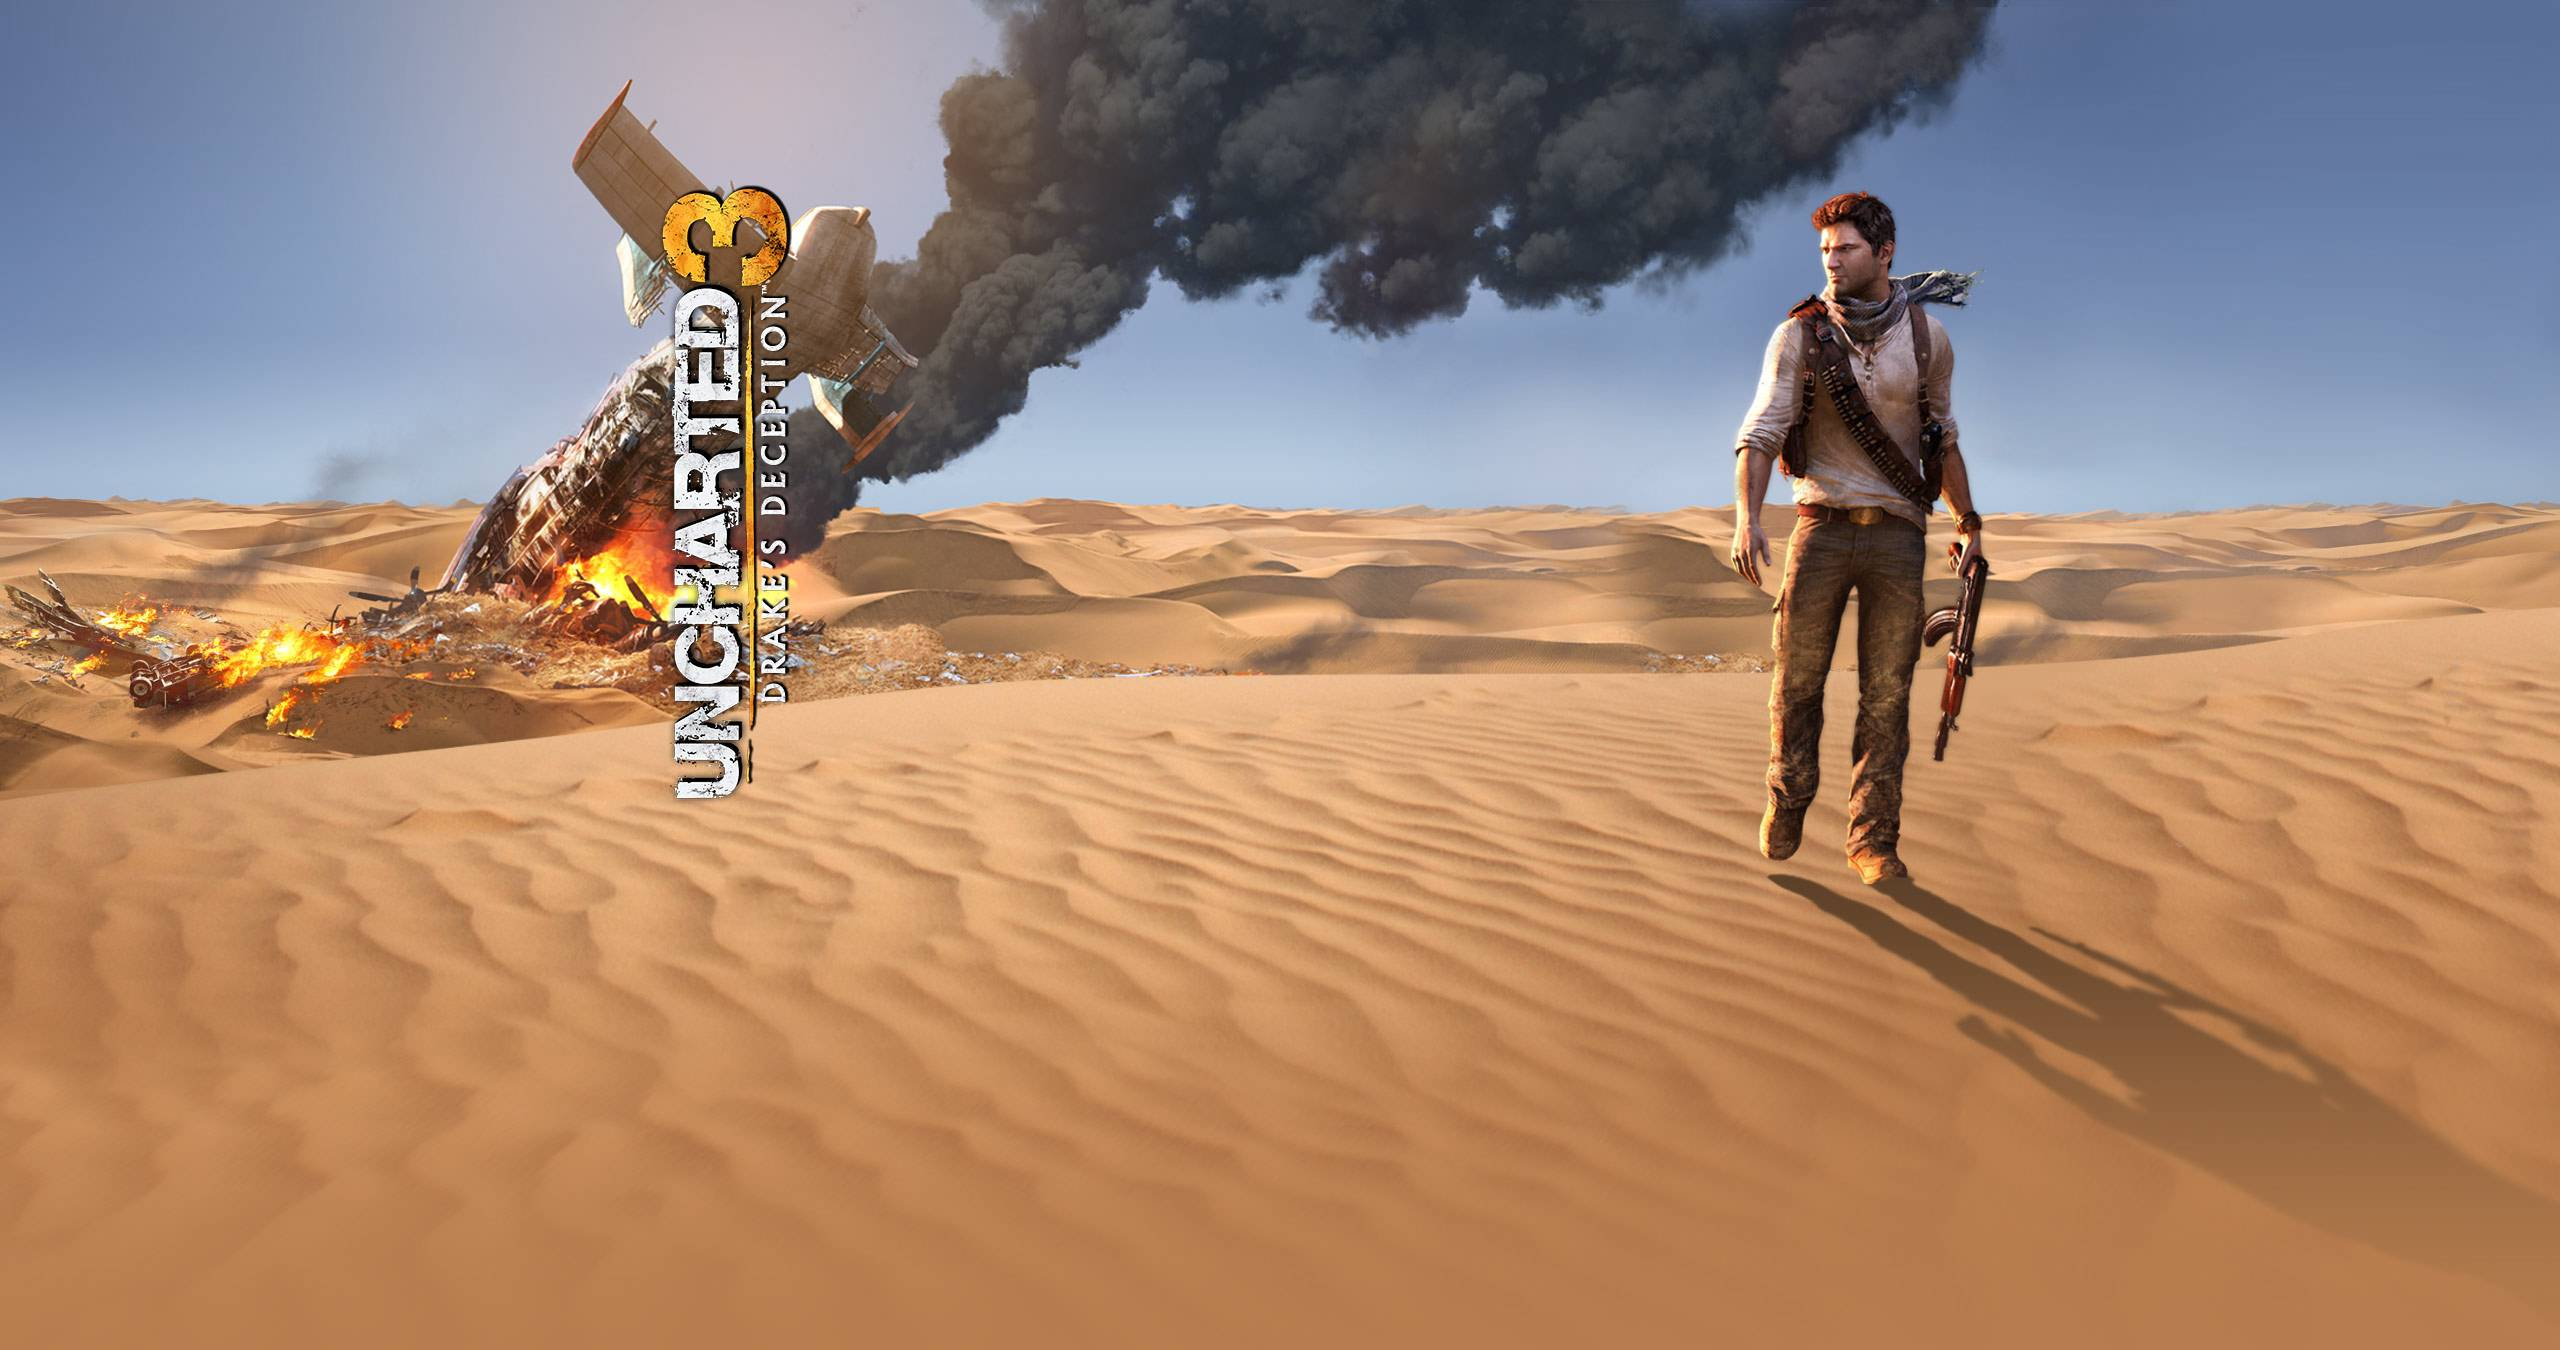 uncharted 3 wallpapers hd 1080pjpg 2560x1350